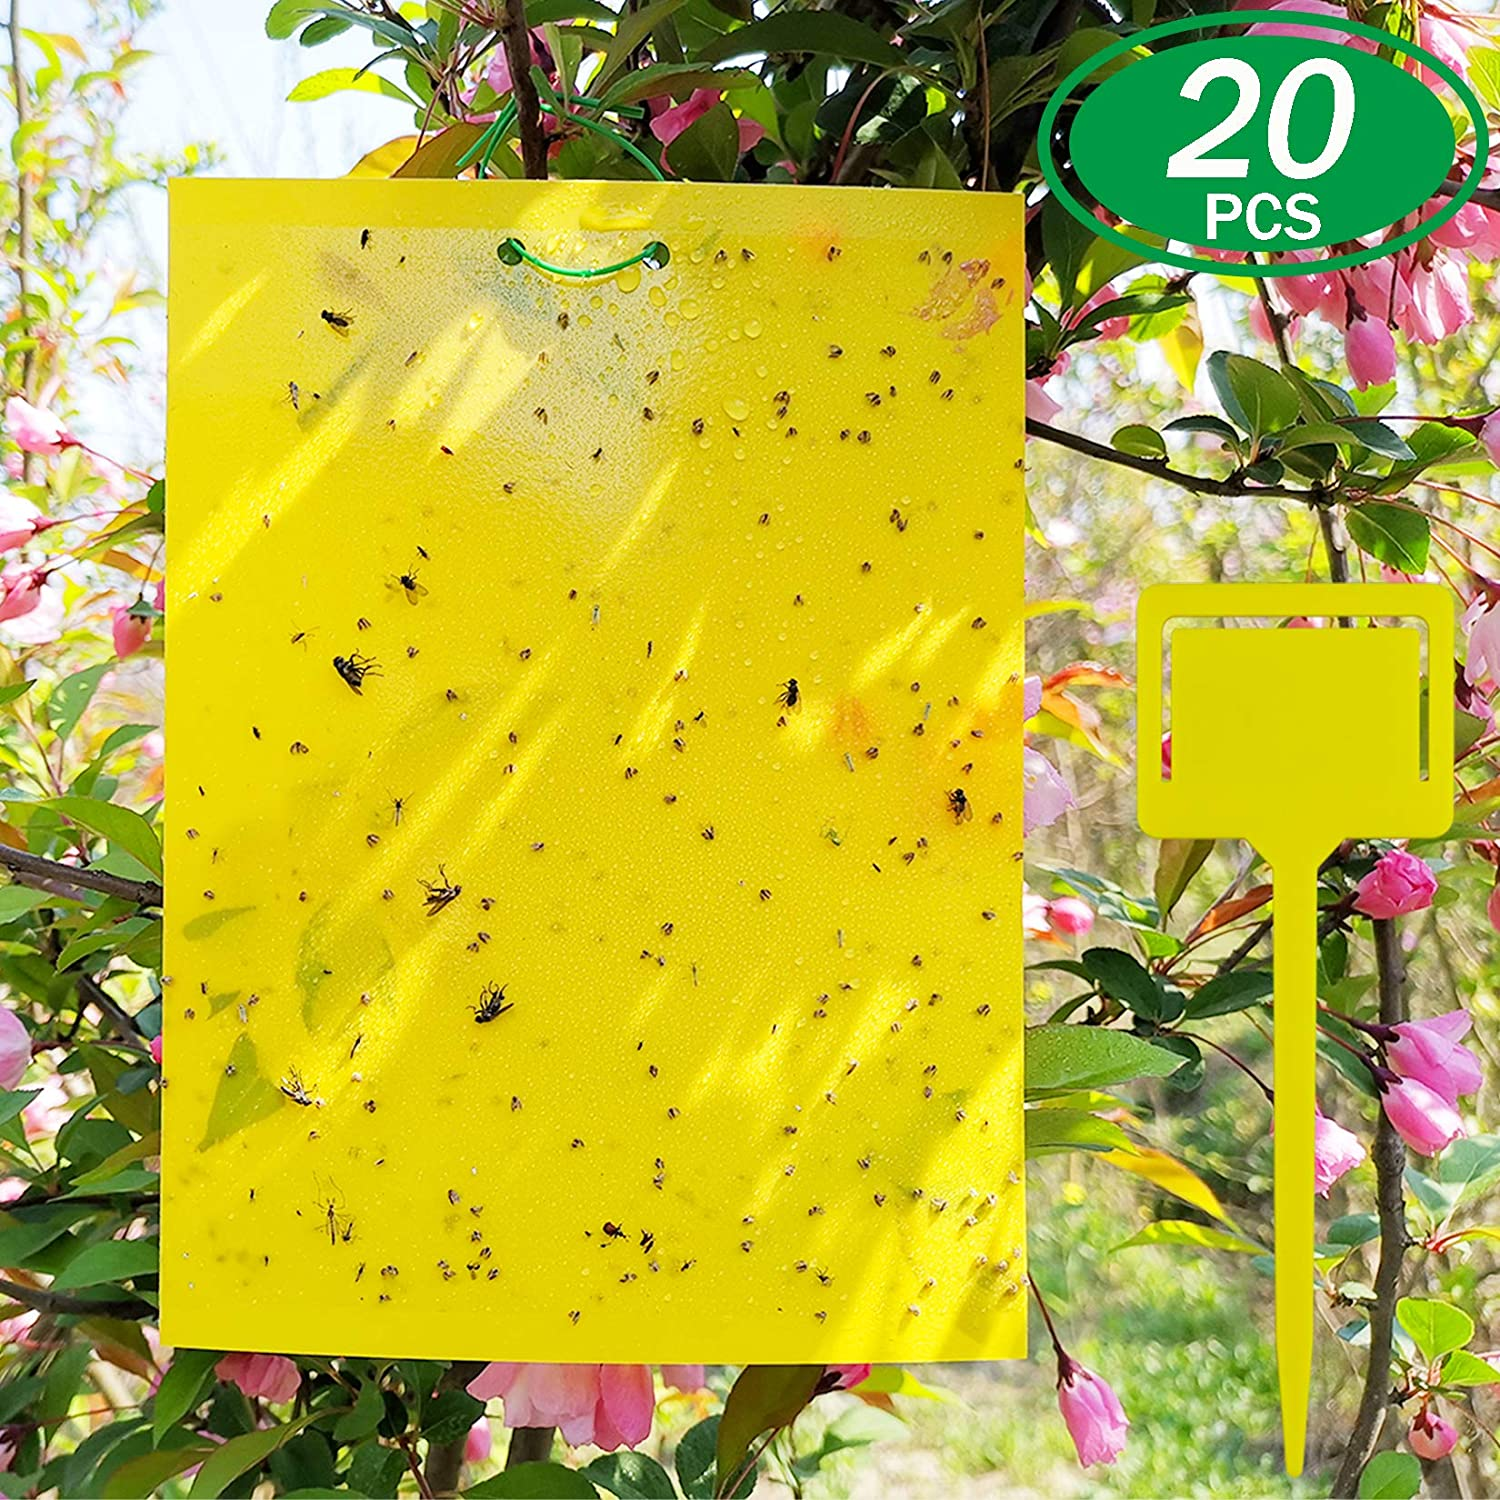 ALIGADO 20 Sheets Yellow Fruit Fly Traps, 8x6 Inches, Plastic Sheet Fly Traps for Mosquitoes, Fungus Gnats, White Flies, Indoor and Outdoor